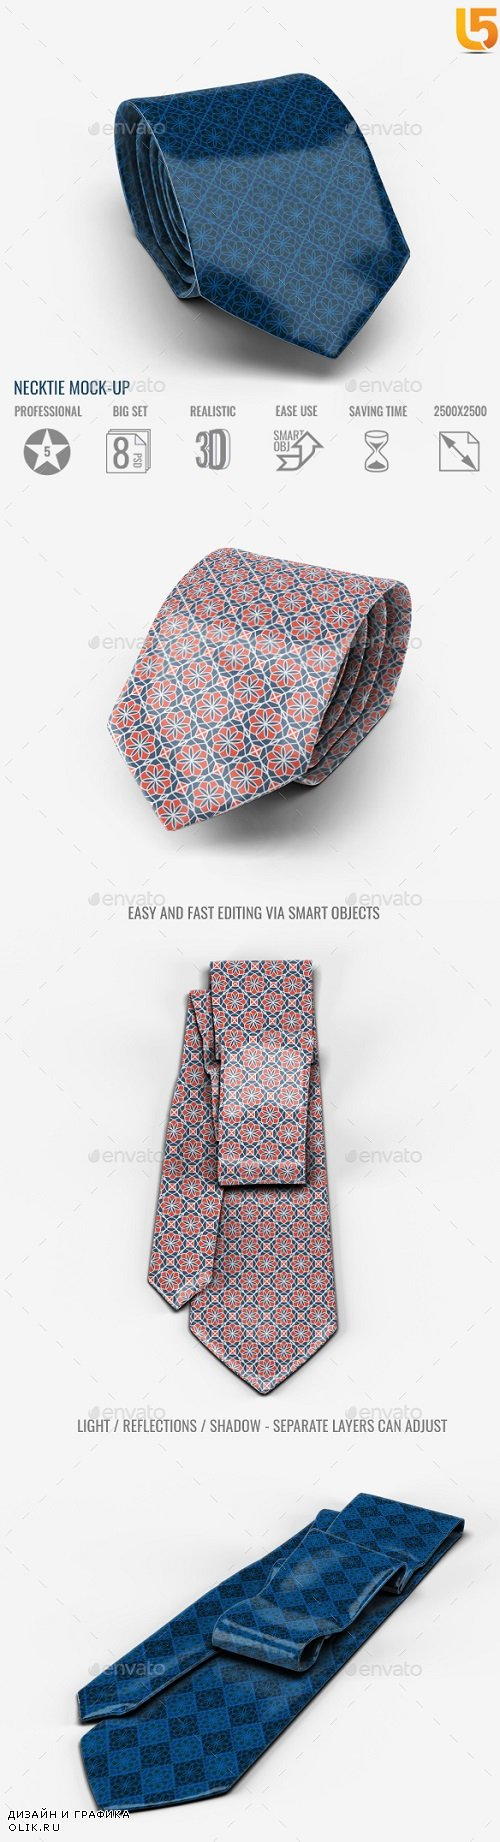 Necktie Mock-Up 20413212